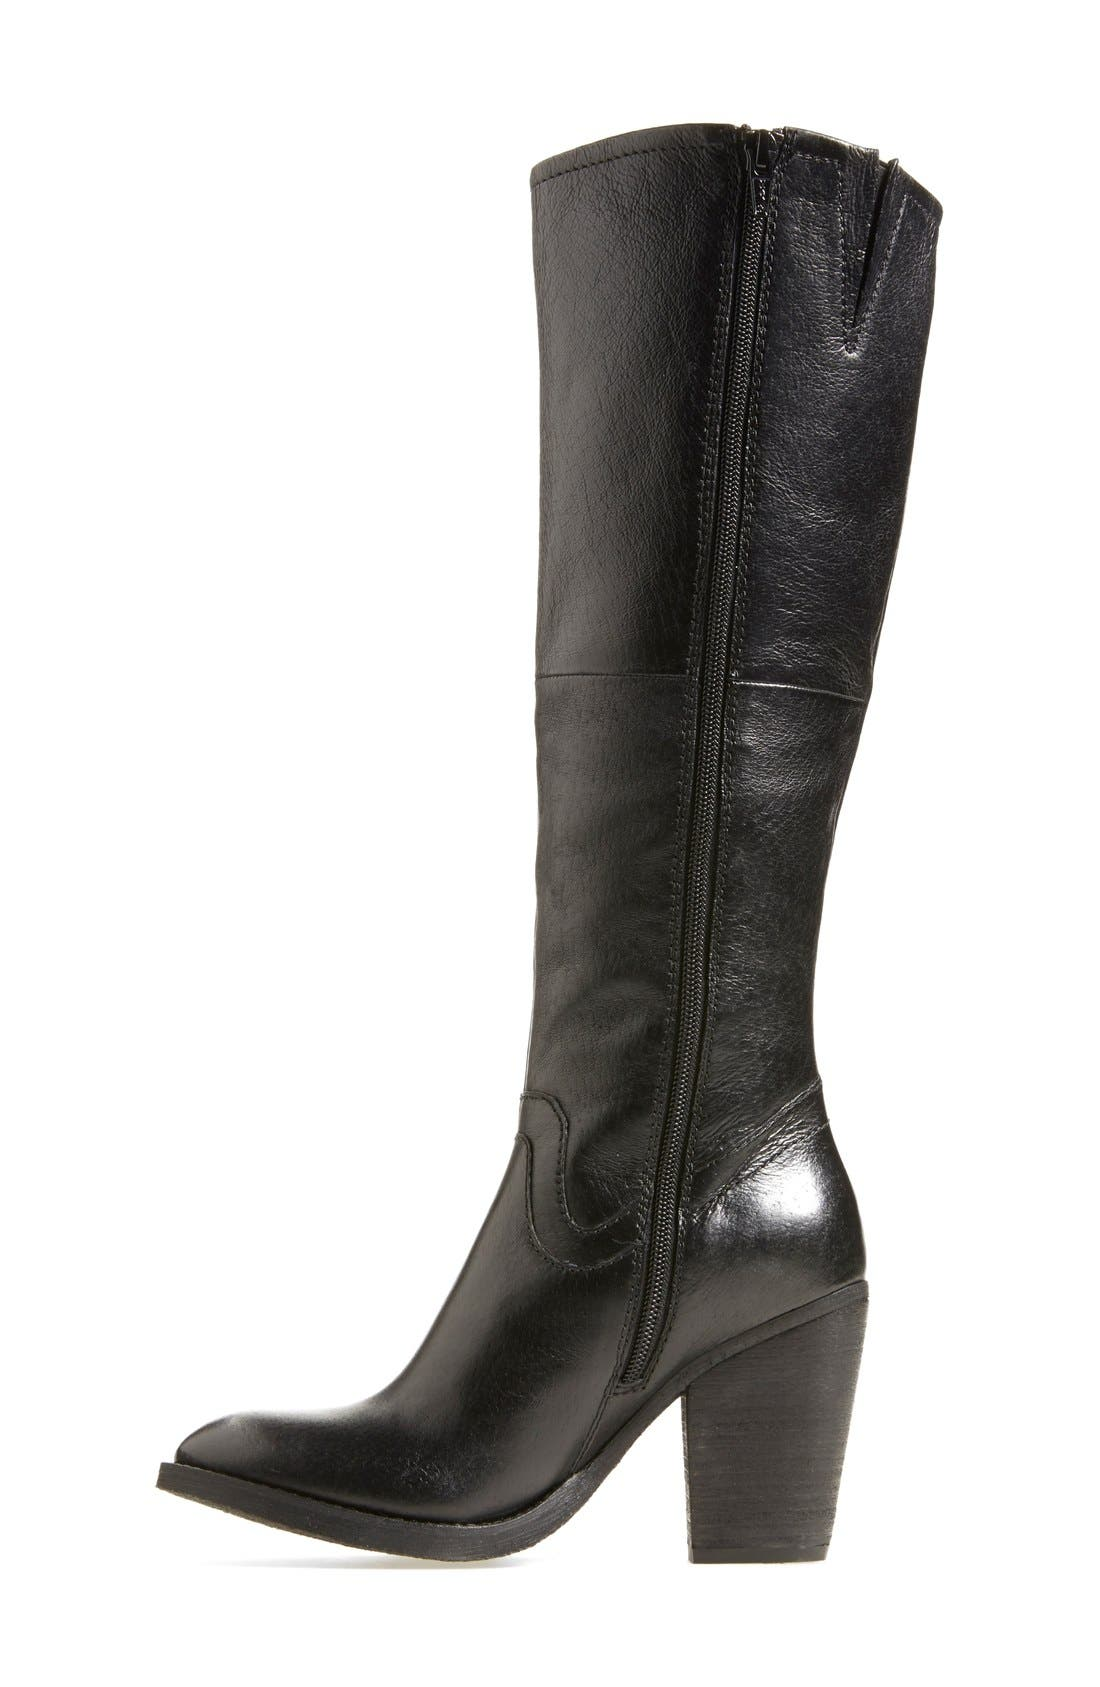 'Carrter' Knee High Leather Boot,                             Alternate thumbnail 5, color,                             001